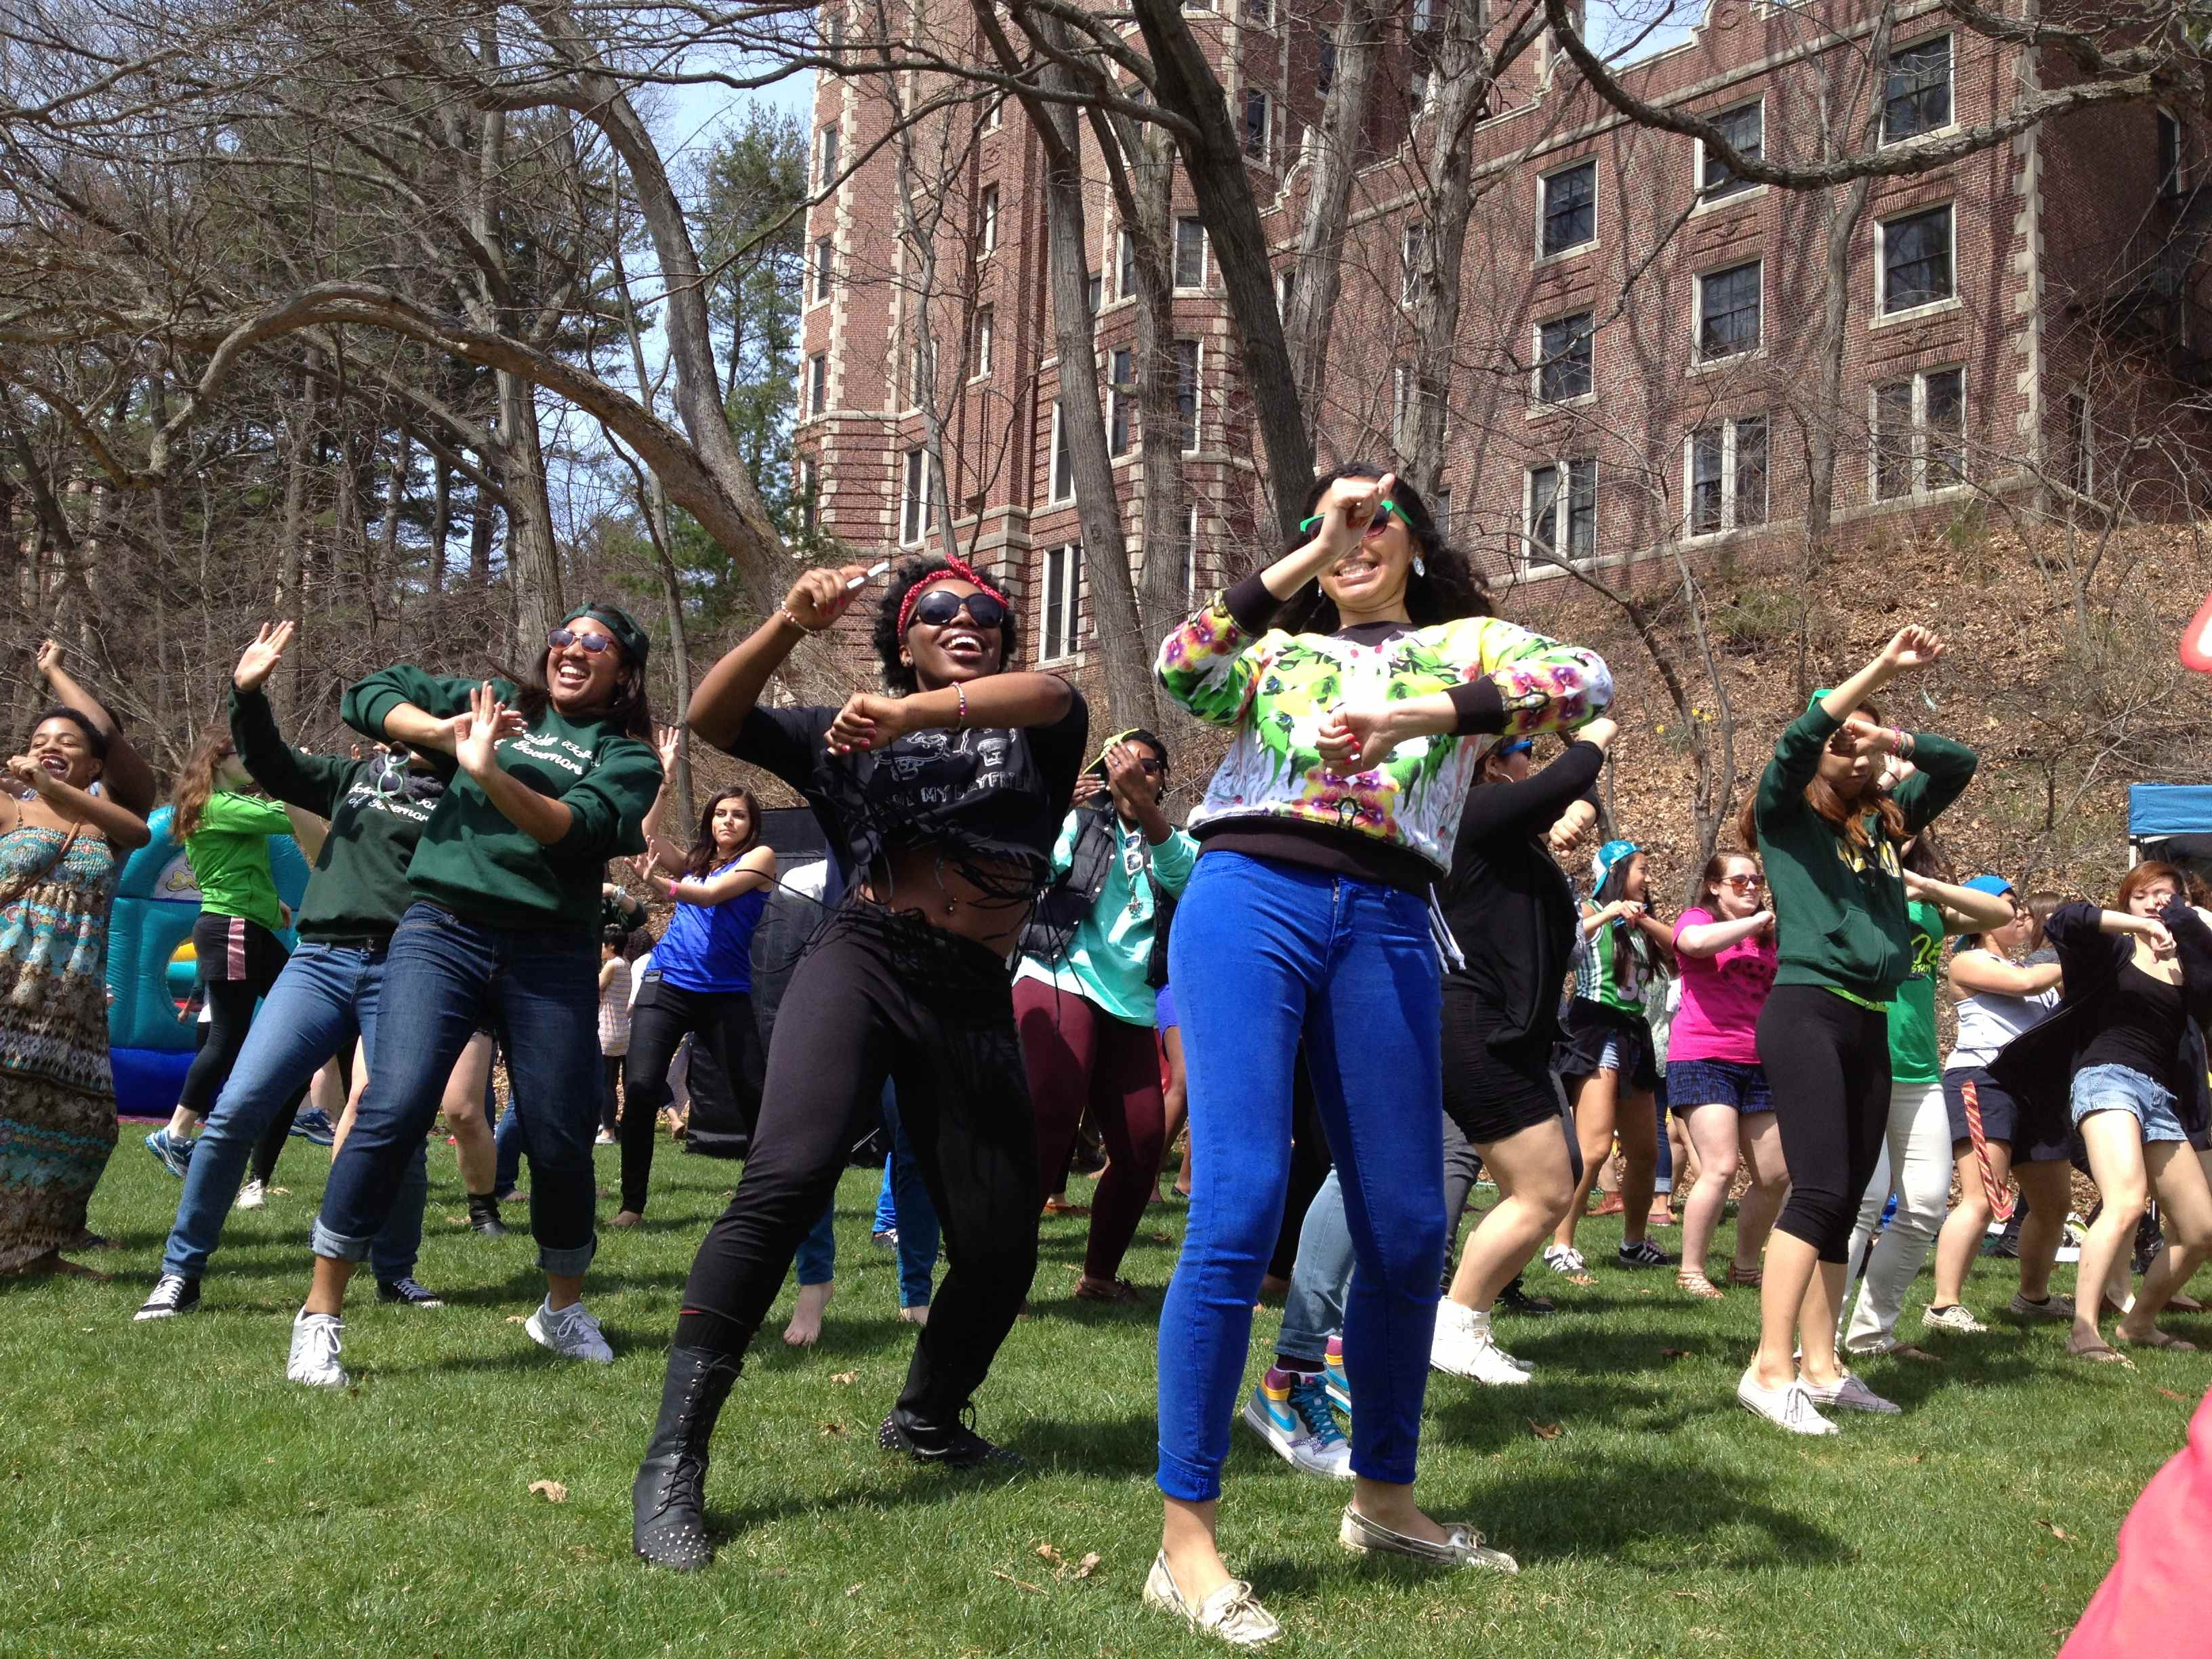 Dance party on Munger Meadow!